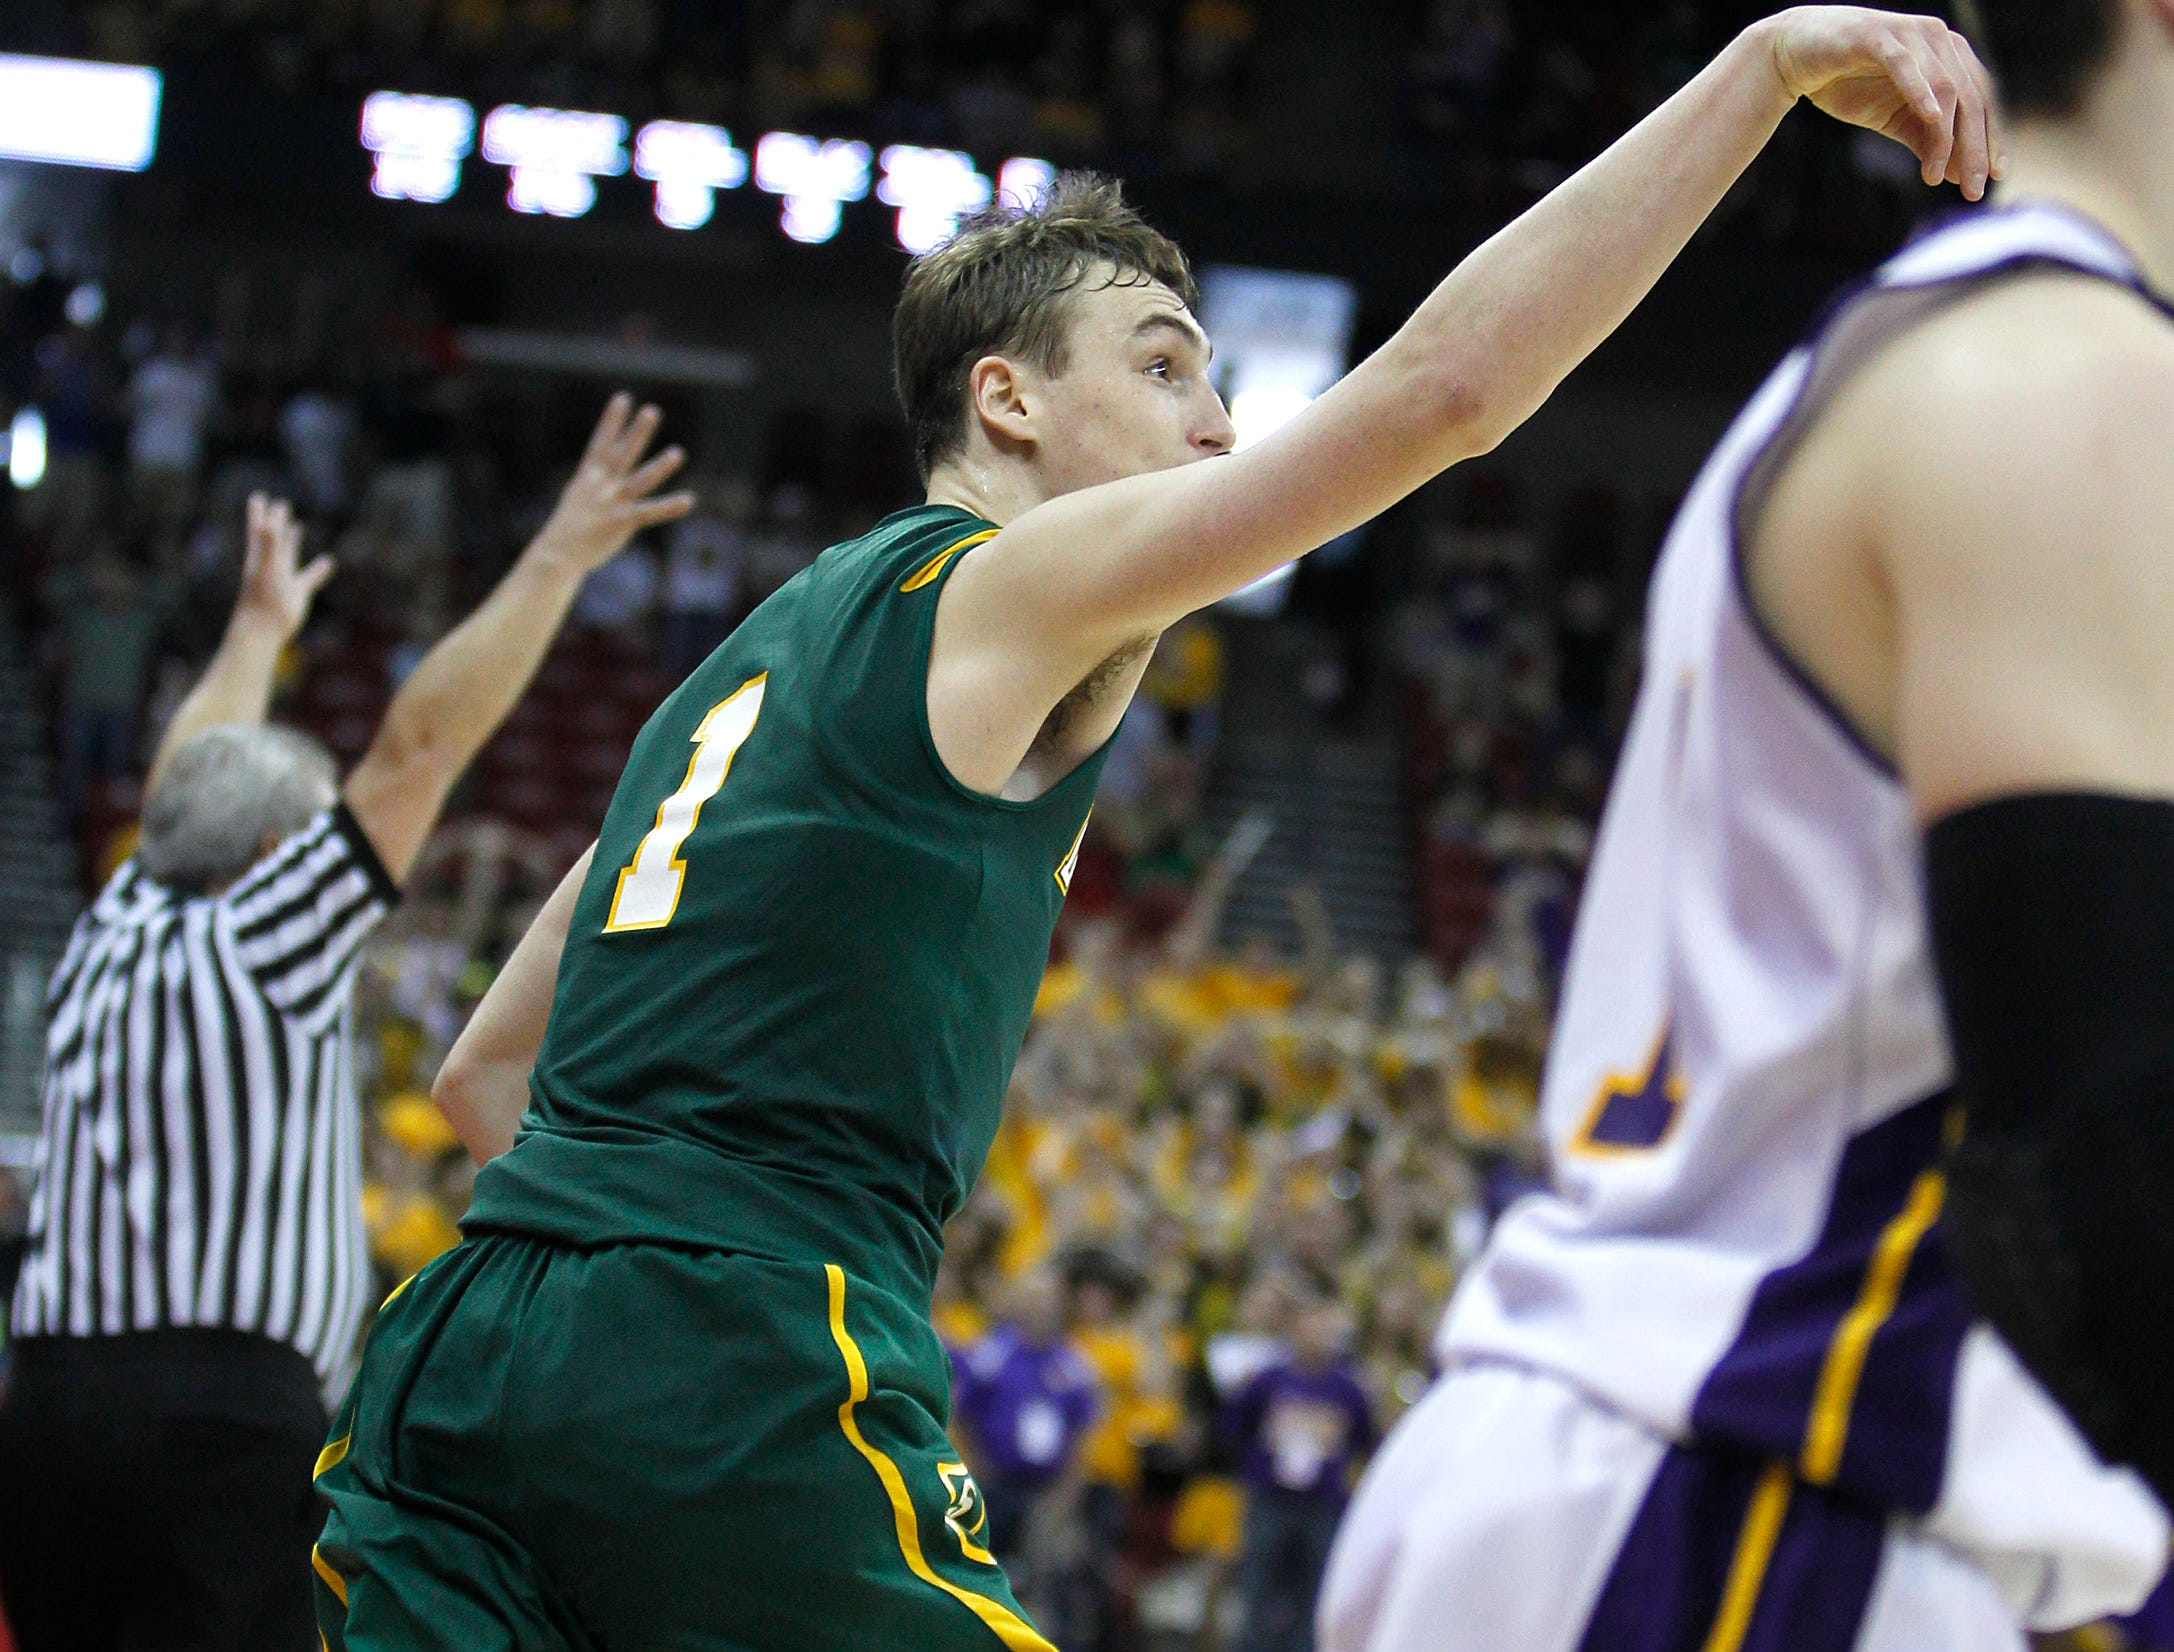 Sheboygan Area Lutheran's Sam Dekker follows through with a three pointer at the buzzer to defeat Racine Lutheran for the 2012 Division 5 Wisconsin state championship at the Kohl Center.